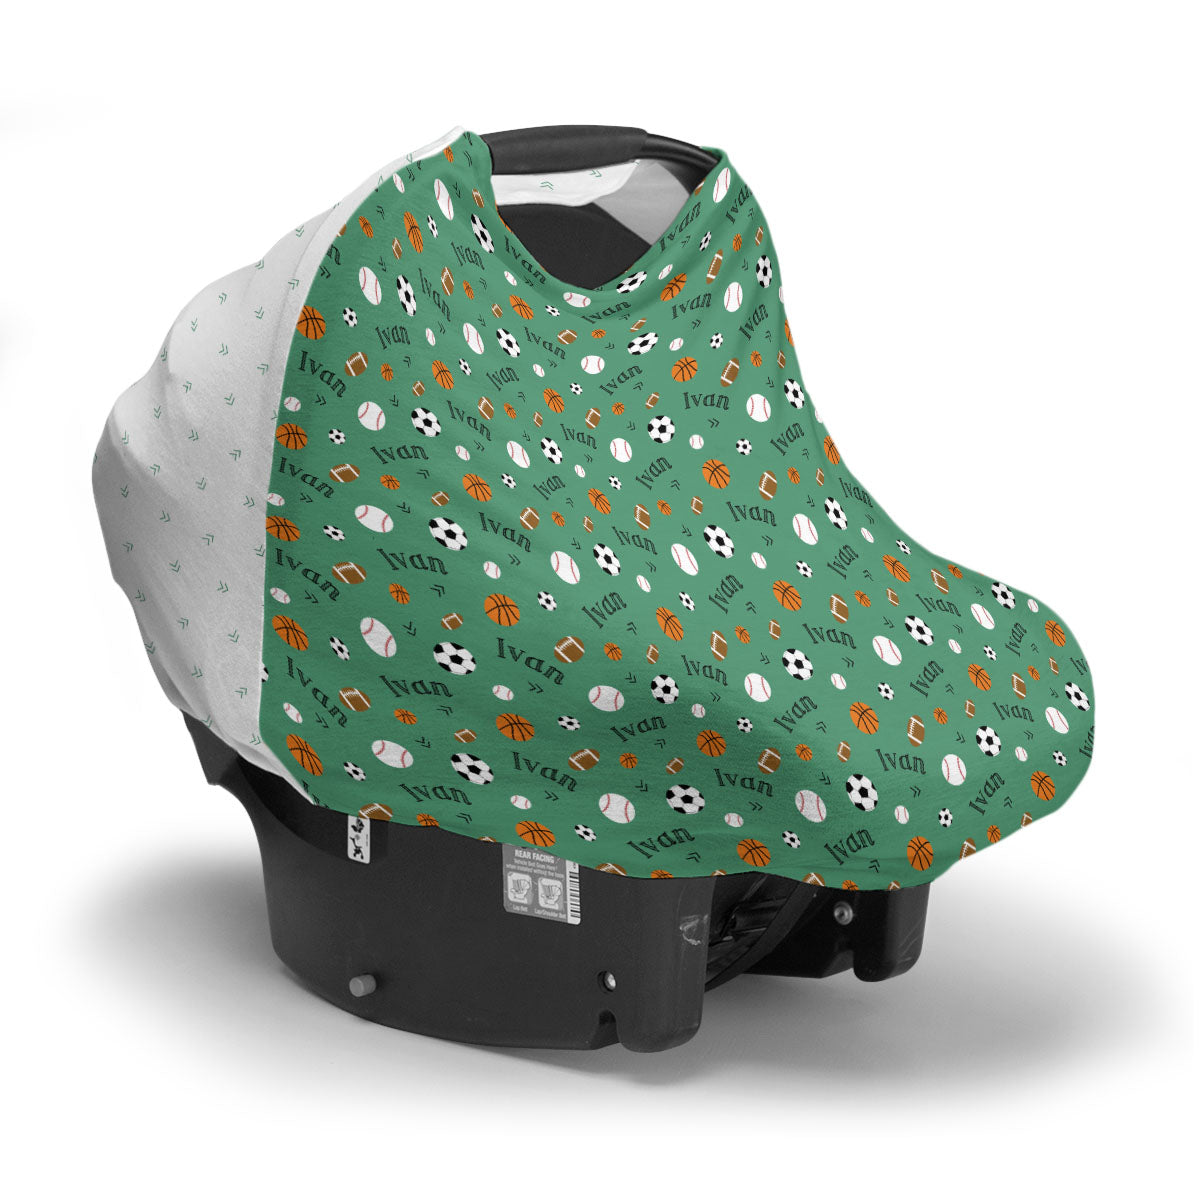 Ivan's Multi Sports | Car Seat Cover (Multi-Use)